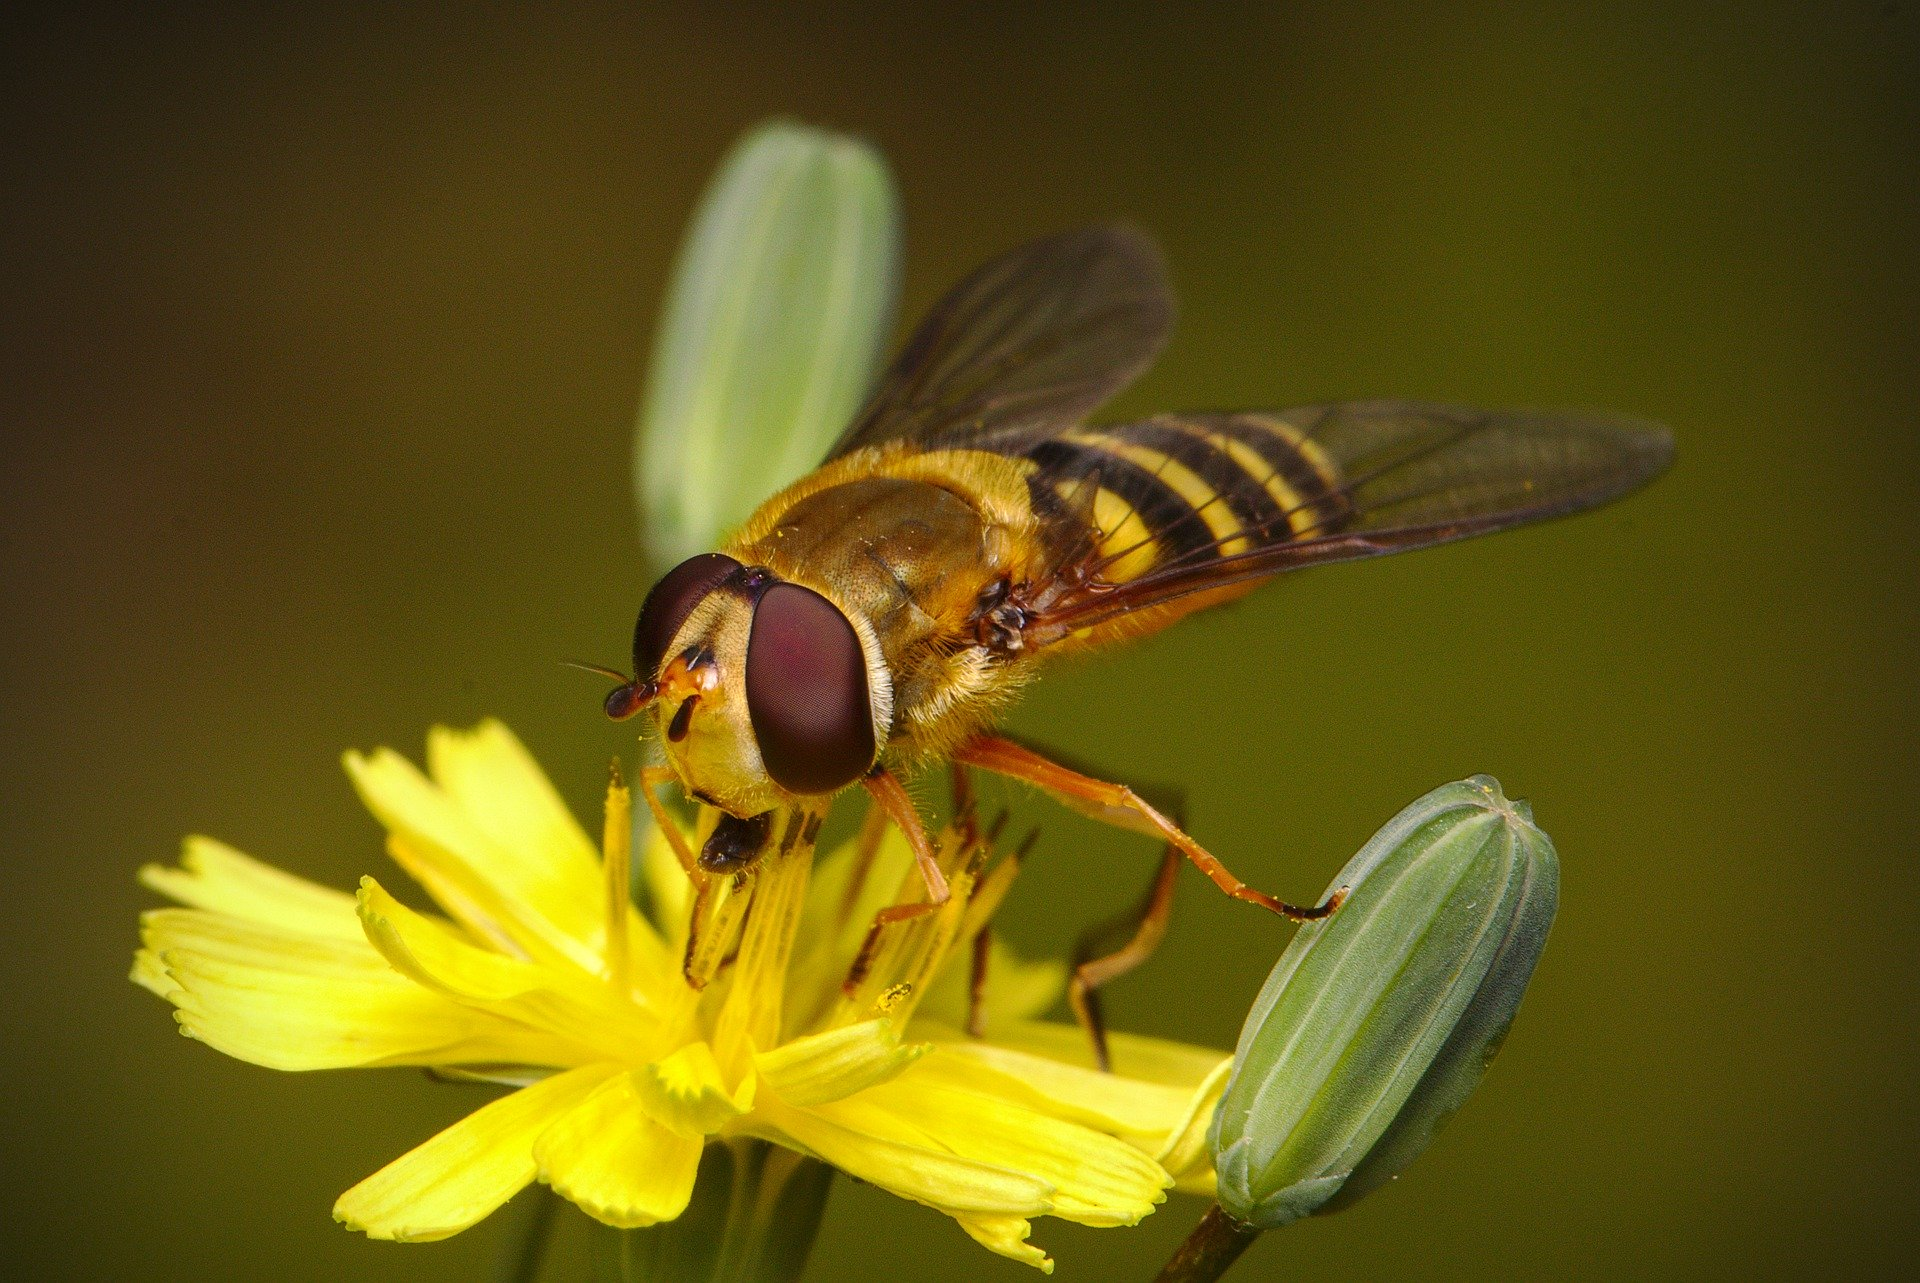 hoverfly-5321136_1920